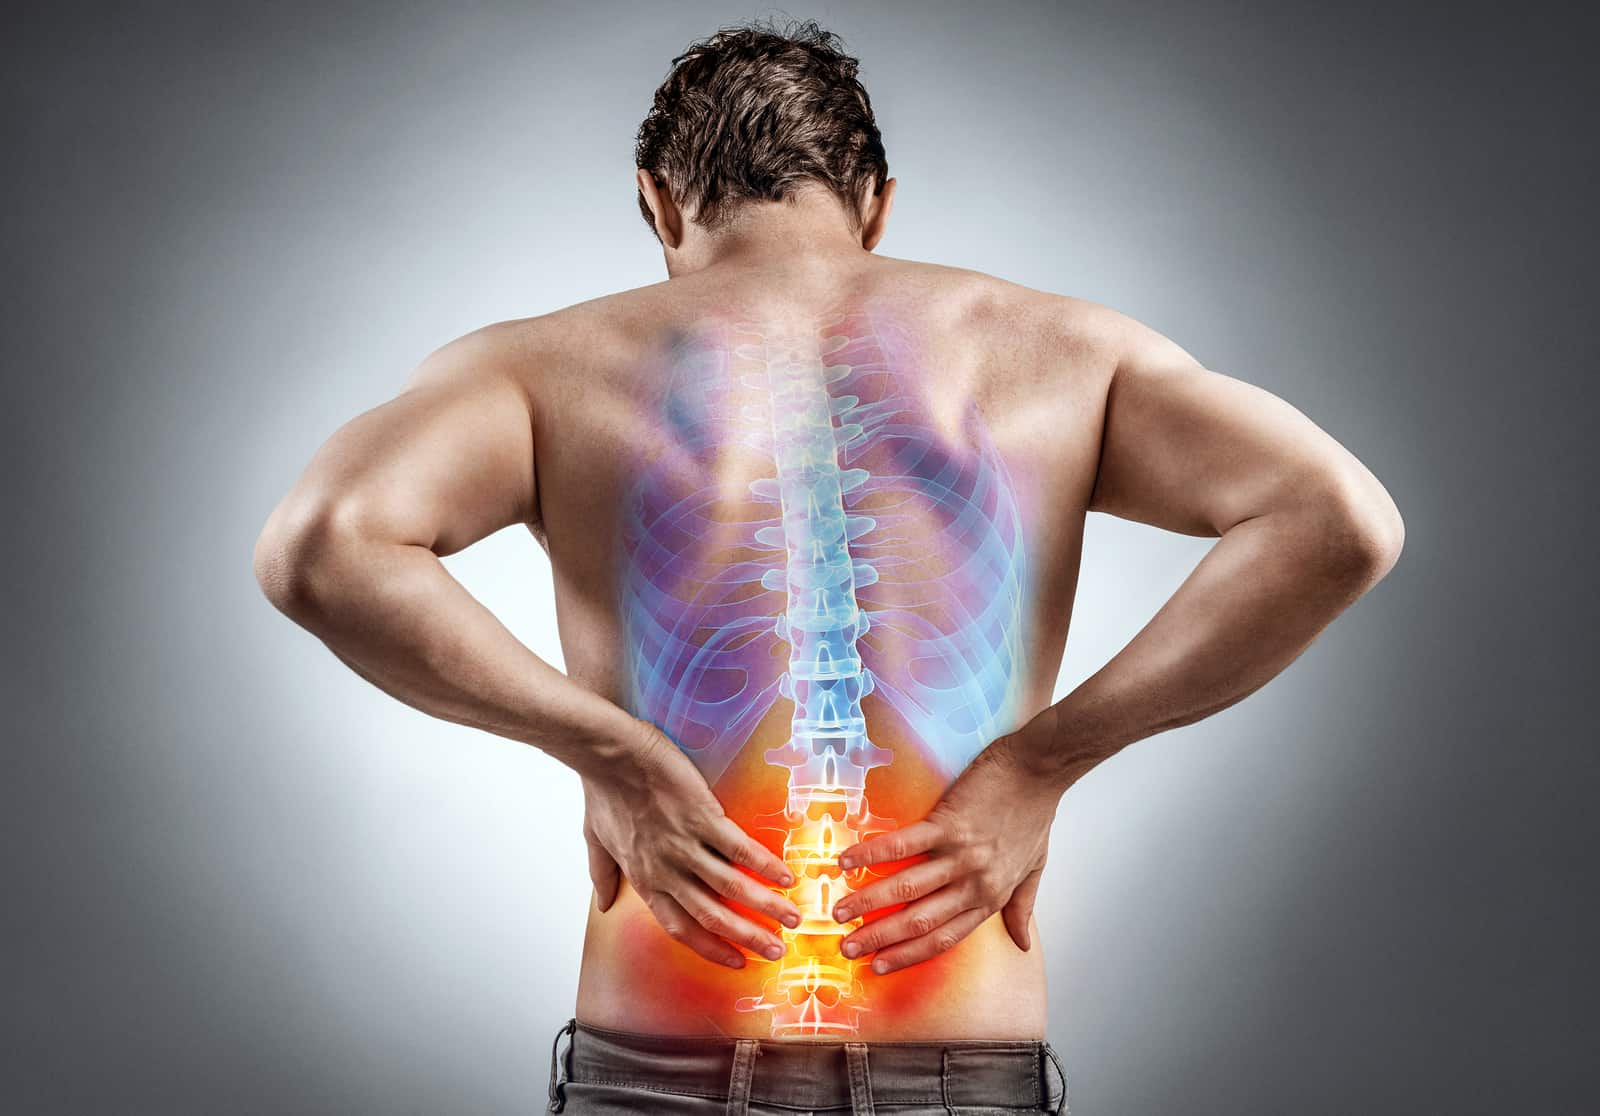 treating depression, anxiety, chronic and acute pain arising from injury (sport, work-related, motor vehicle accident, slip-and-fall, etc.) and medical conditions. For Novo Medical Services, patient care has always been paramount, with no allowance for compromise. We serve patients from all over the GTA, including Toronto, Oakville, Newmarket, Aurora, Thornhill, Vaughan, Scarborough, Markham, Brampton, North York, and Mississauga, and from all over the rest of Ontario, including Kitchener, Hamilton, Oakville, Burlington.